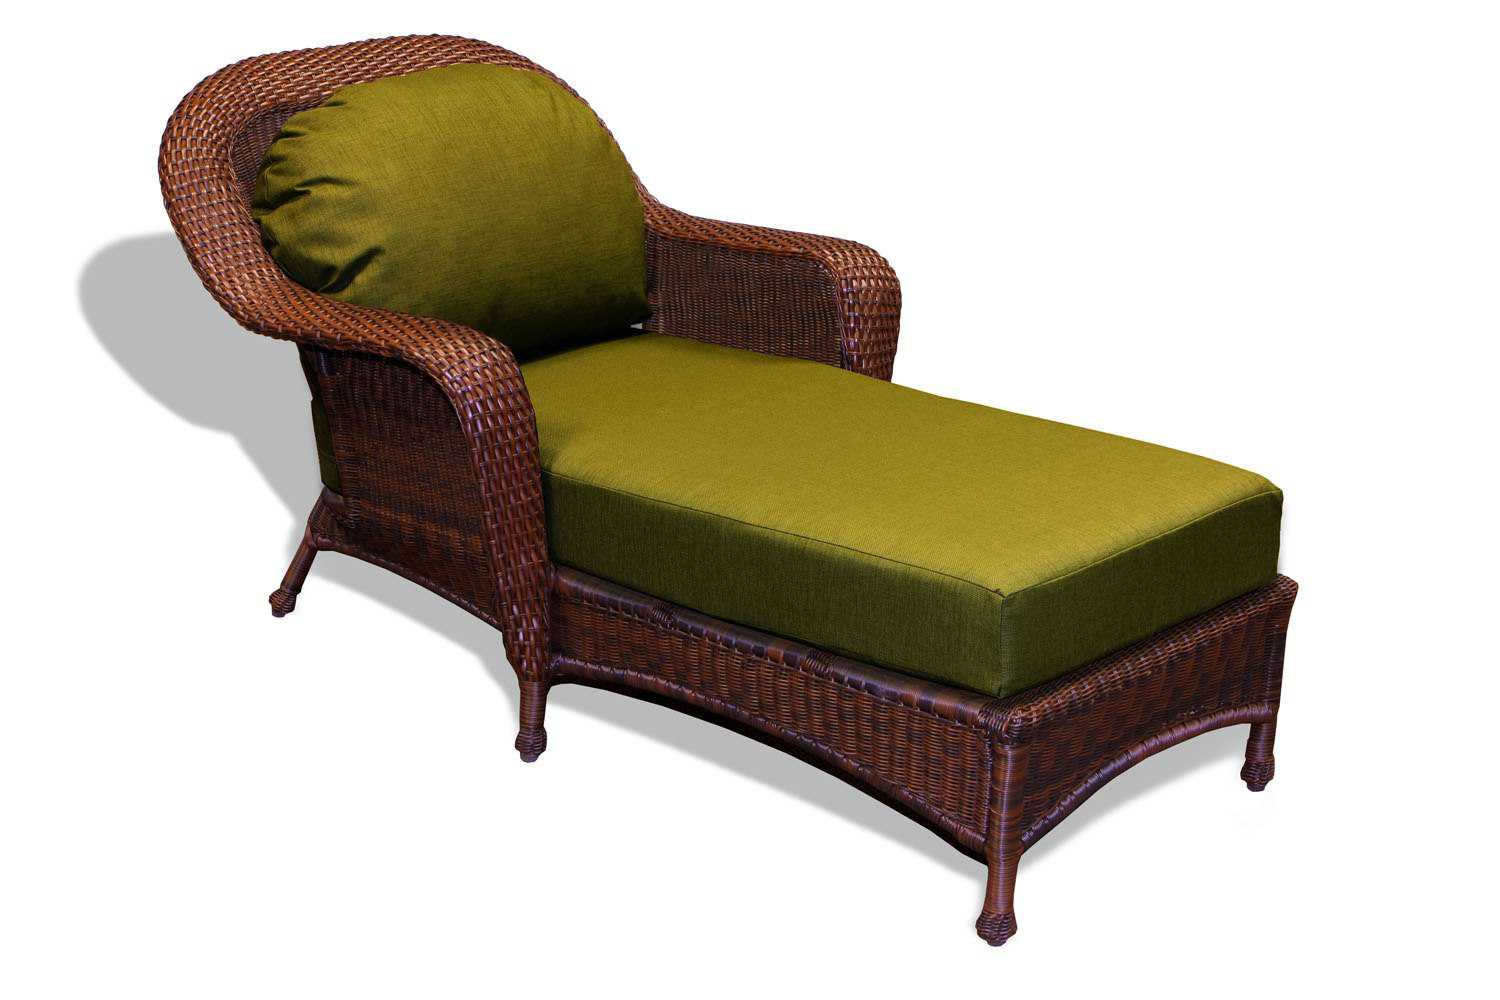 Tortuga outdoor lexington wicker cushion chaise lounge for Chaise cushion covers